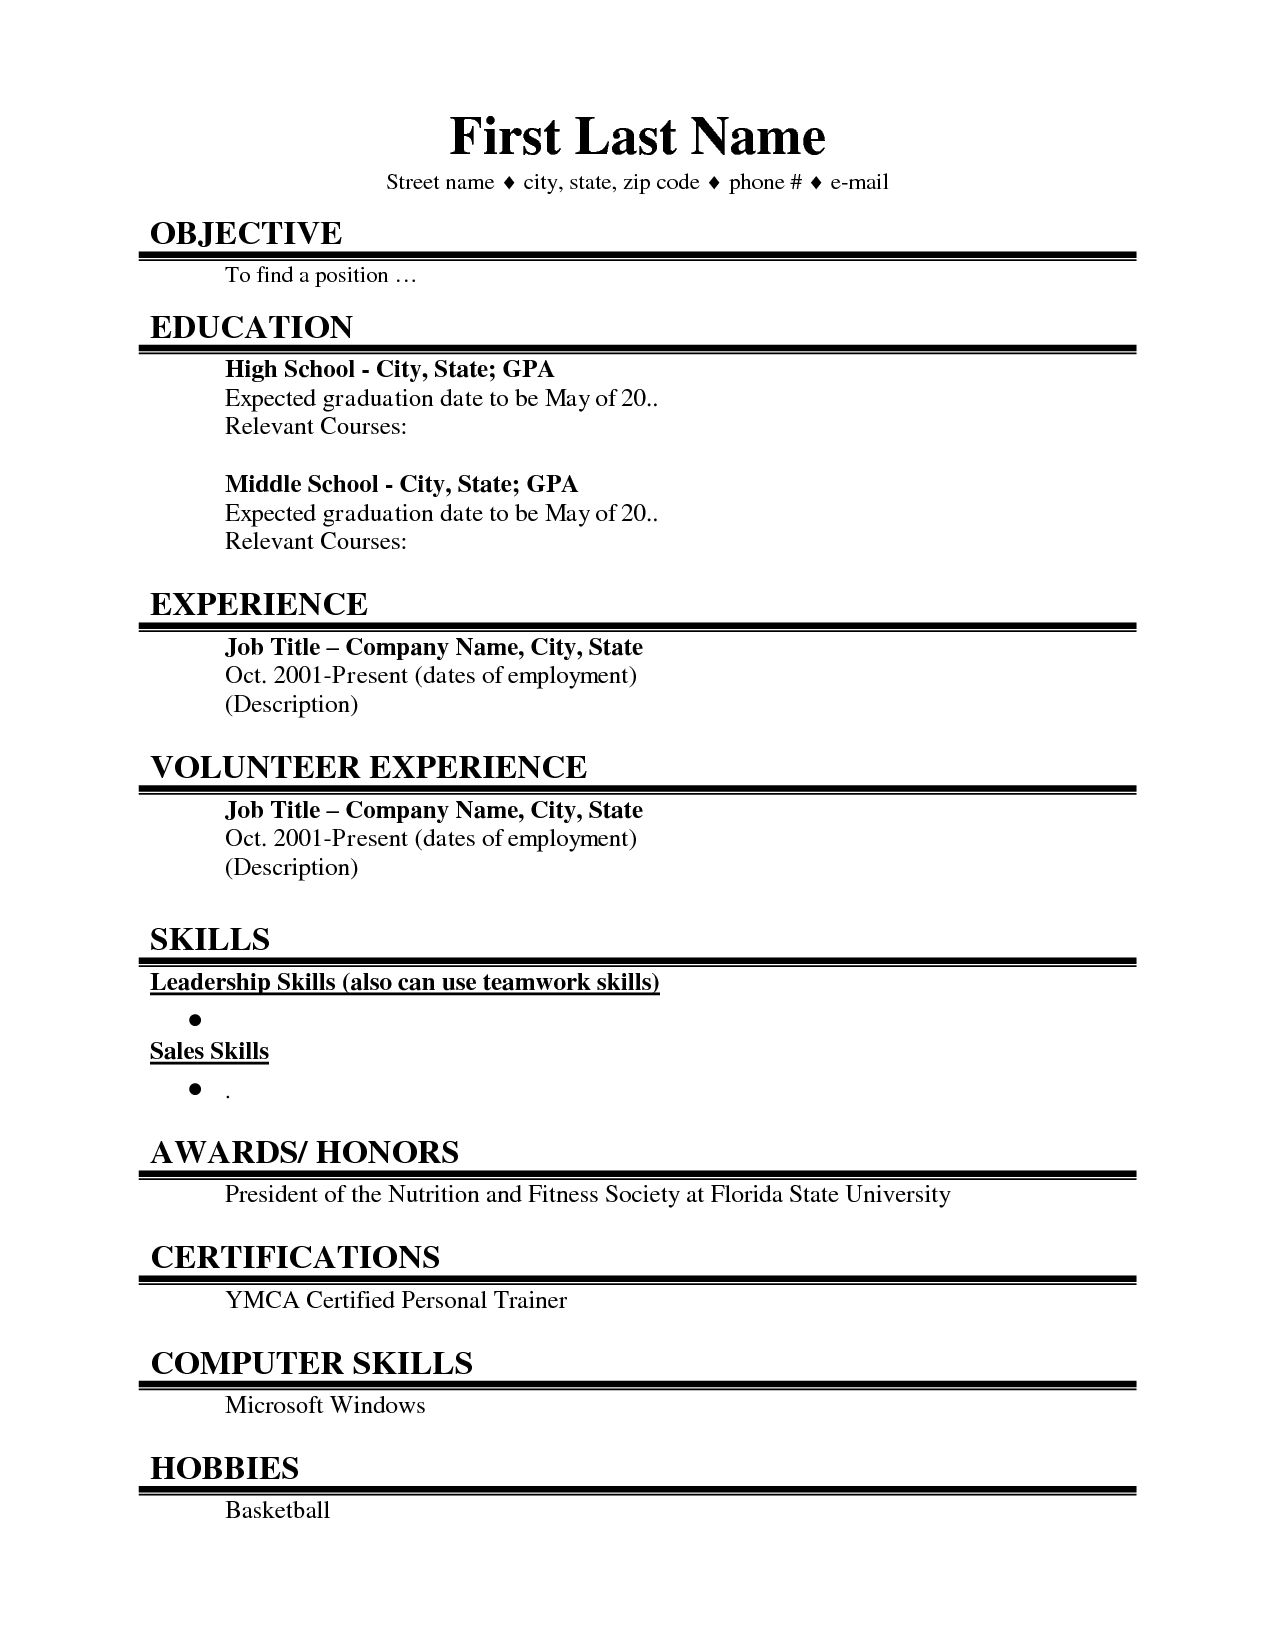 best of class resume writing samples and resume writing advice first job resume google search more